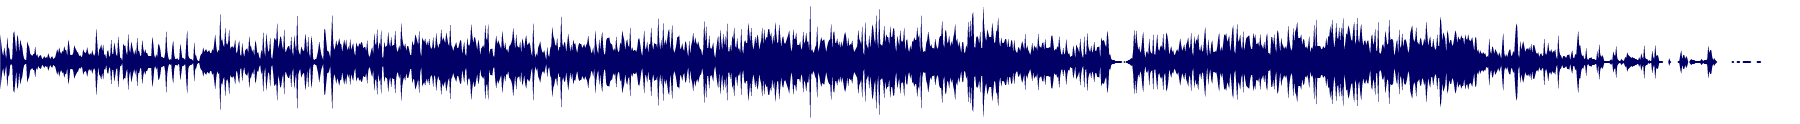 waveform of track #73233